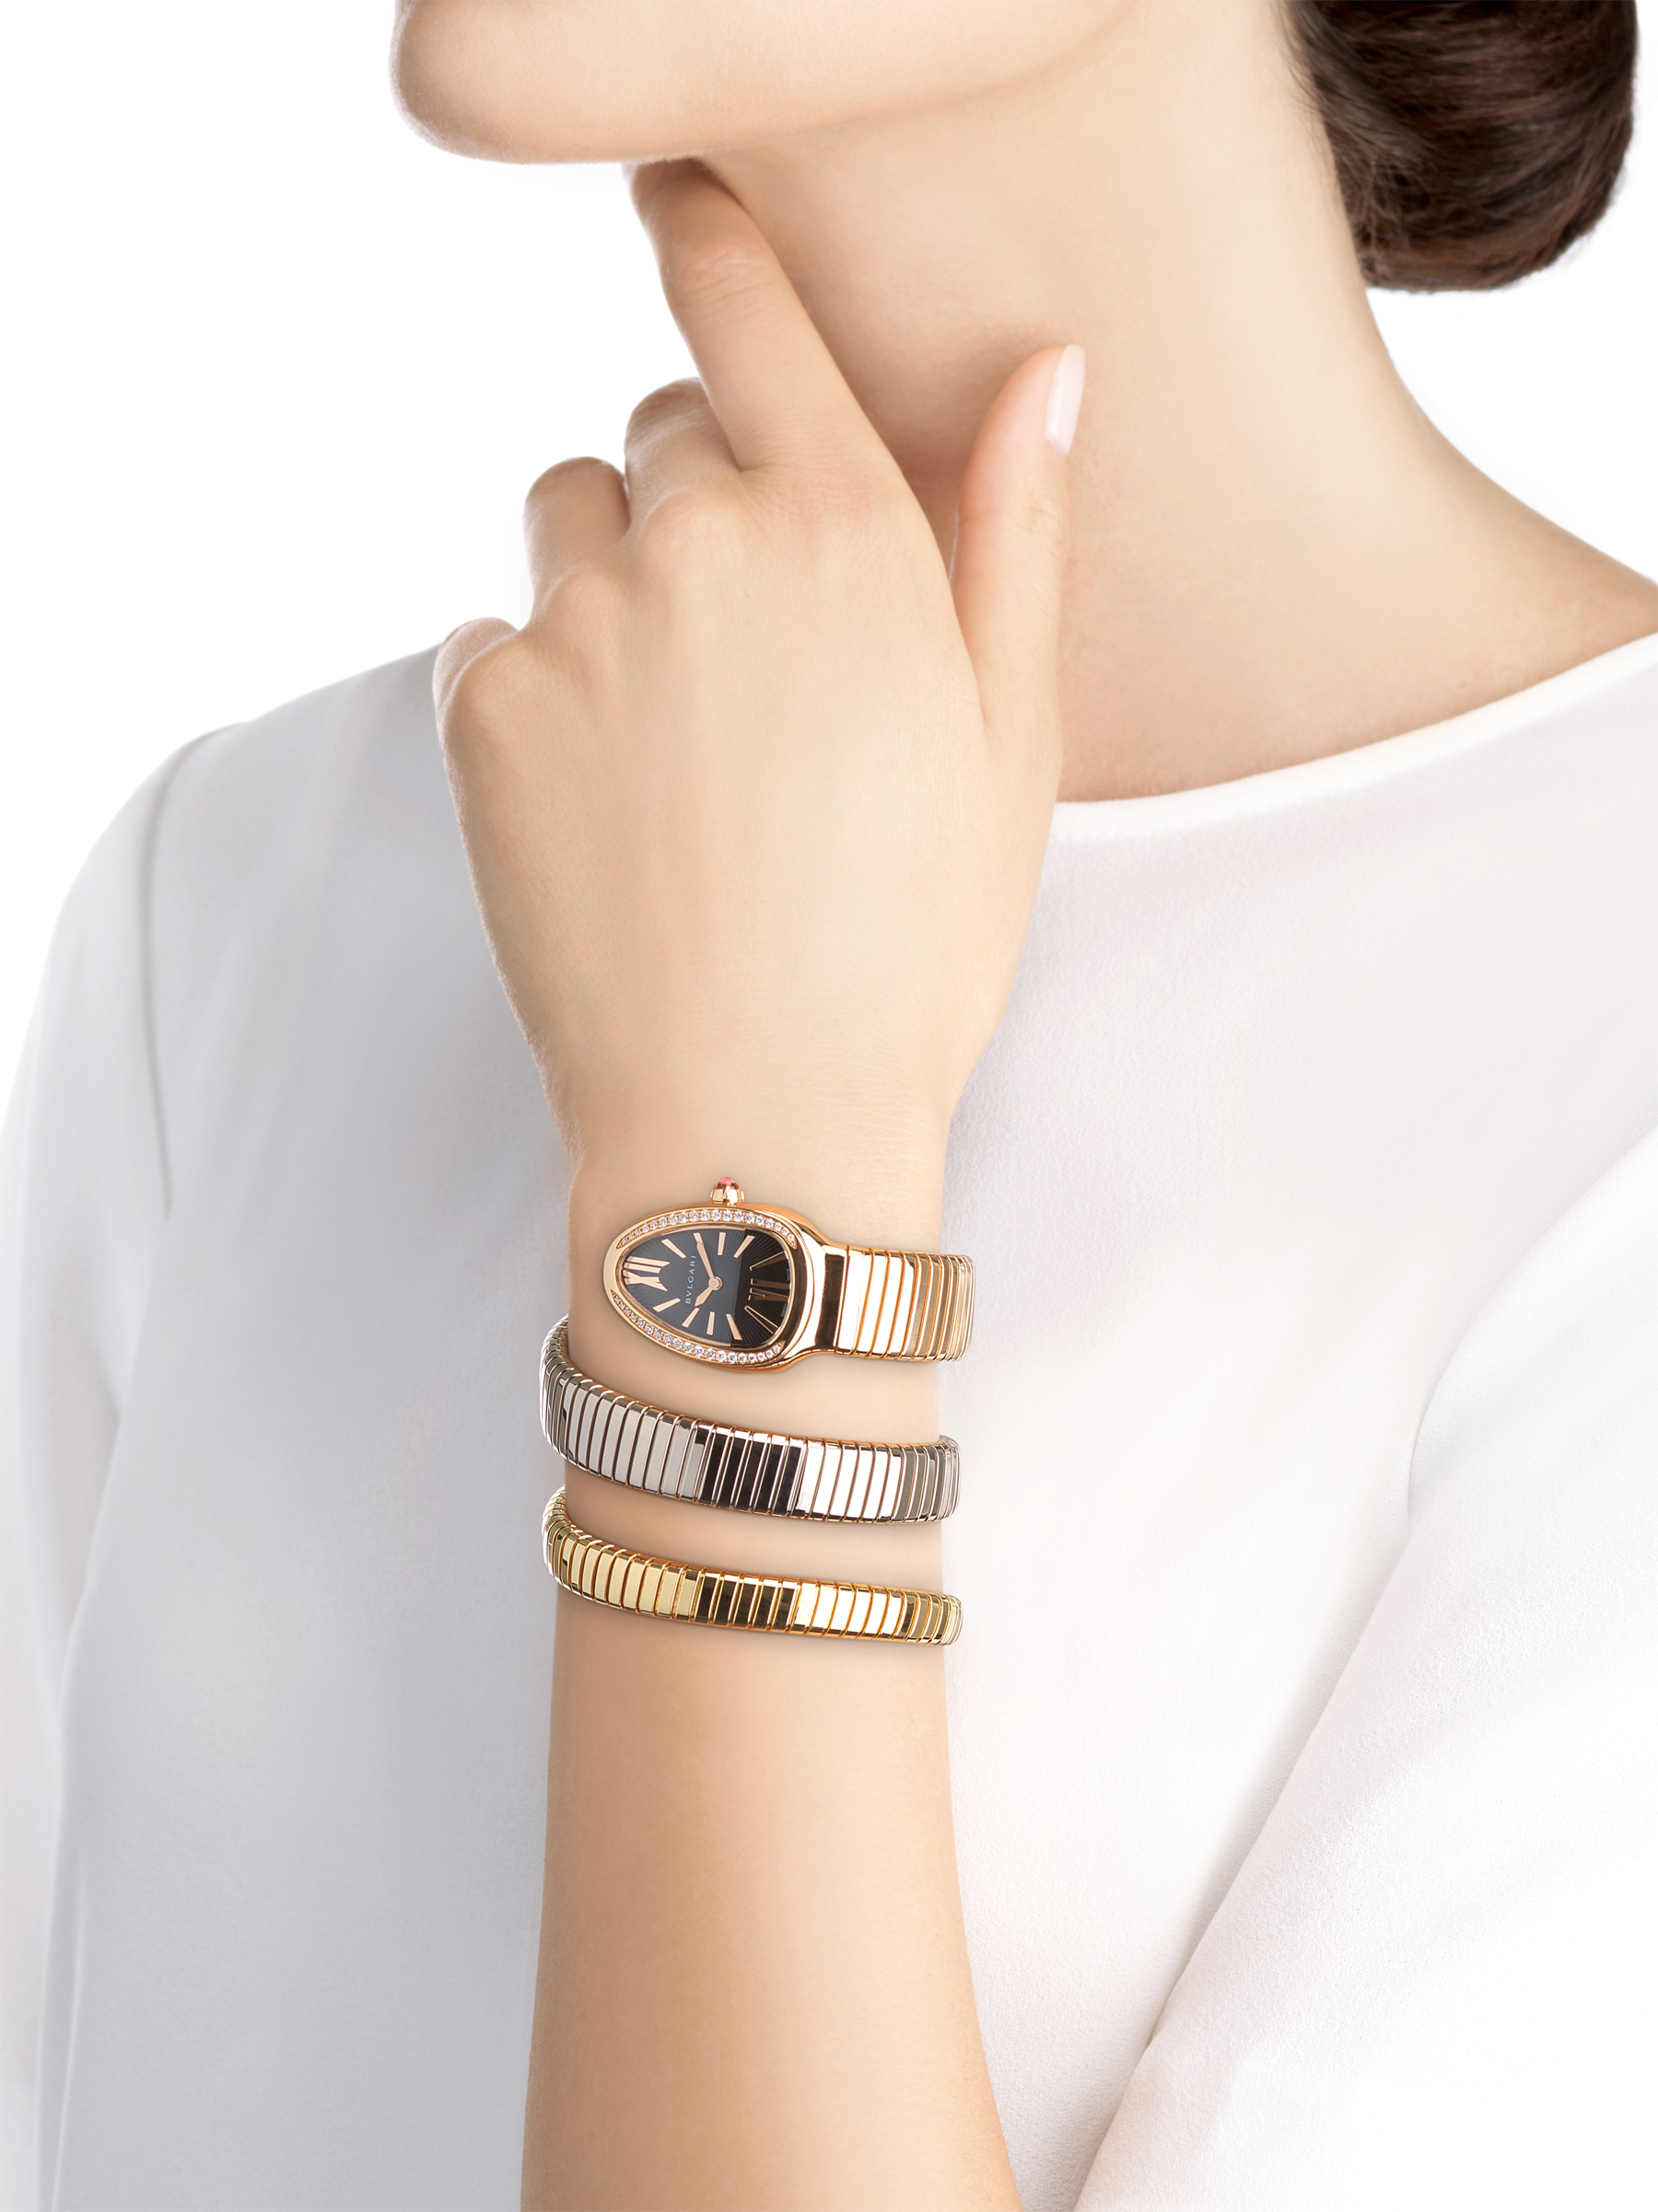 Serpenti Tubogas double spiral watch with 18 kt rose gold case set with round brilliant-cut diamonds, black opaline dial and 18 kt rose, yellow and white gold bracelet 102948 image 4